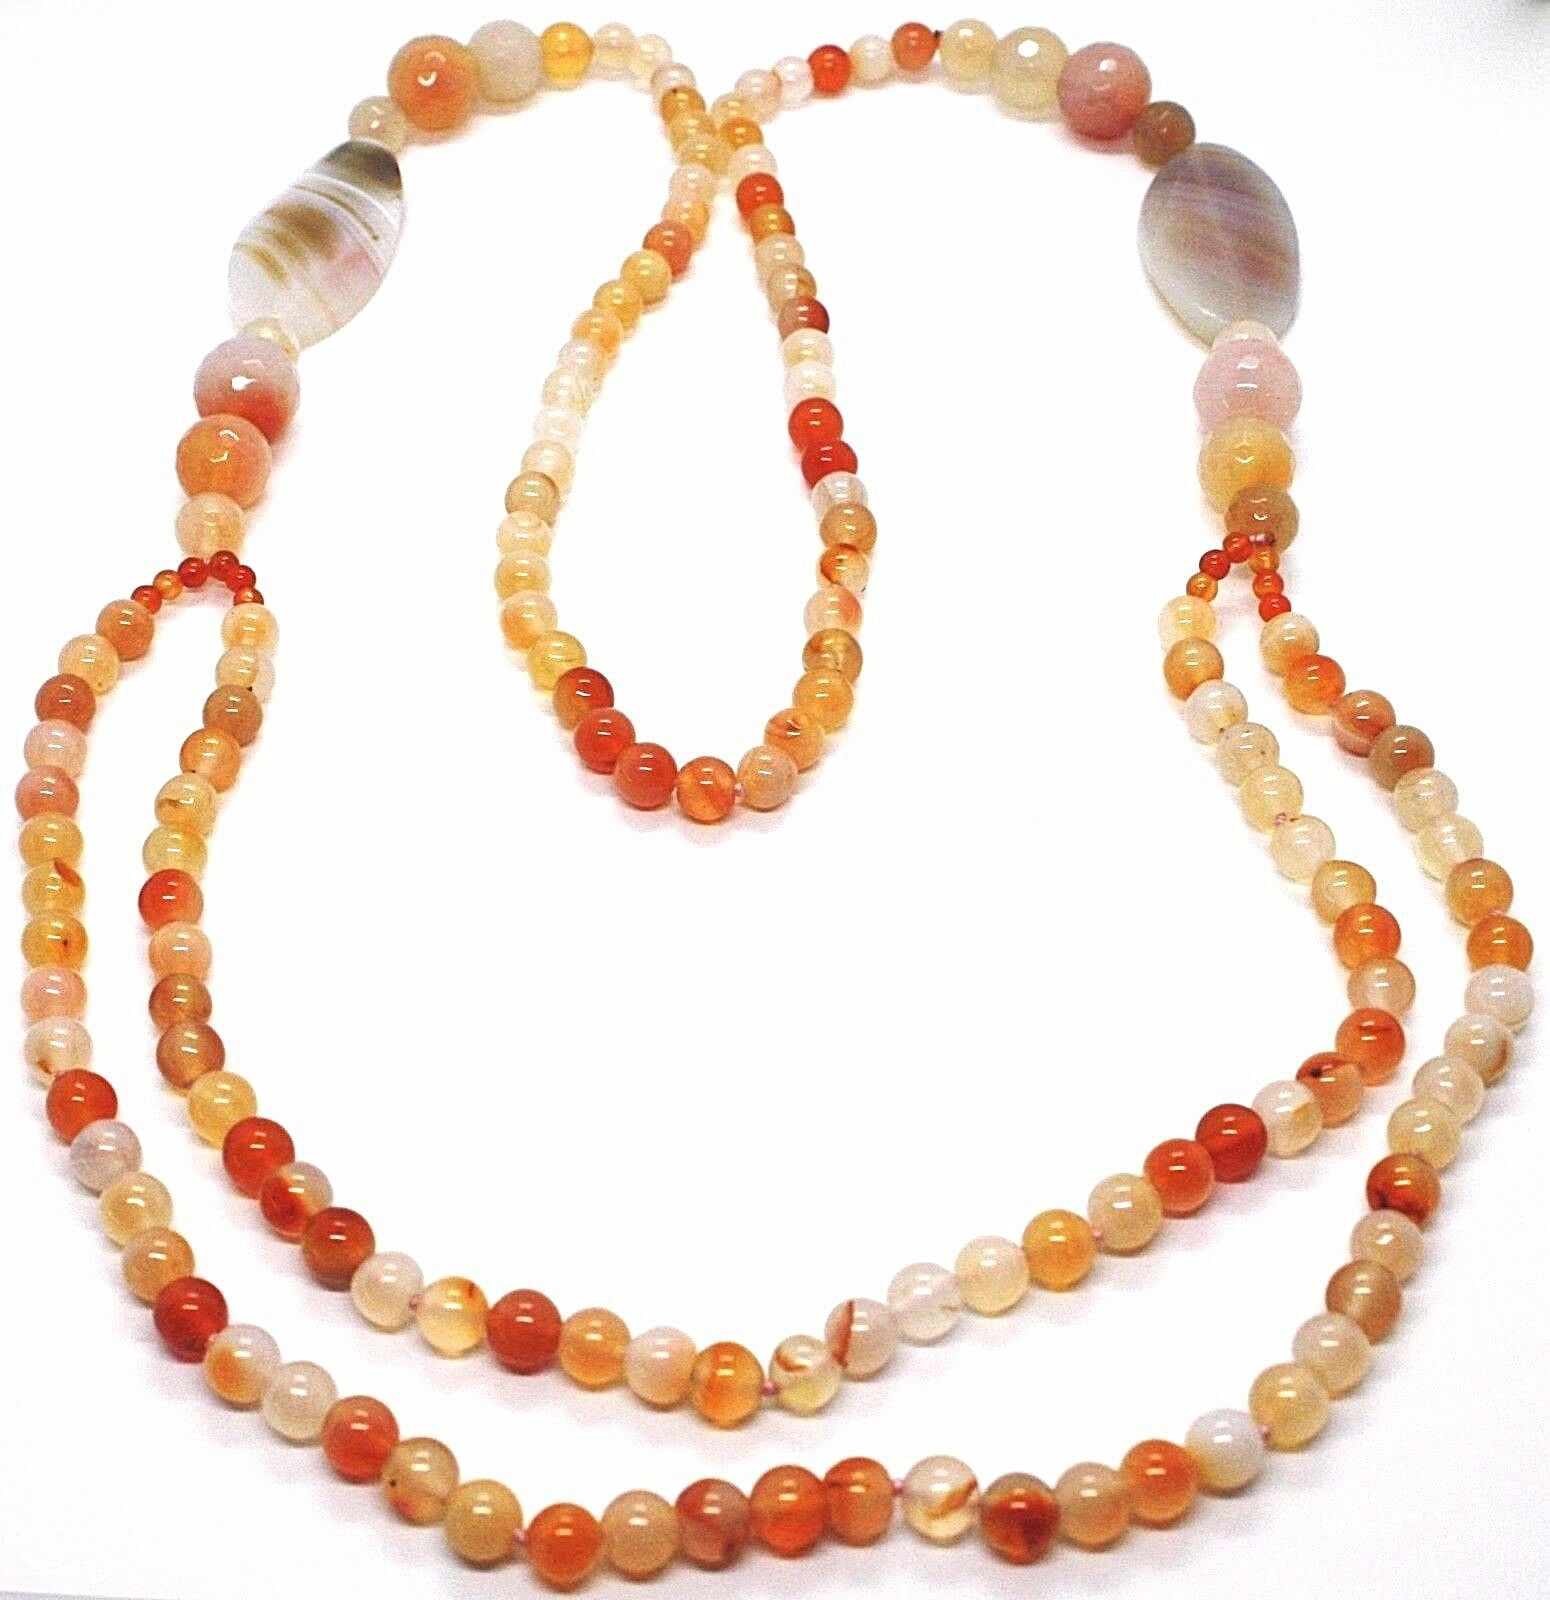 LONG NECKLACE 100 CM, 1 metro AGATE RED AND BROWN, SPHERES OVALS, DOUBLE THREAD